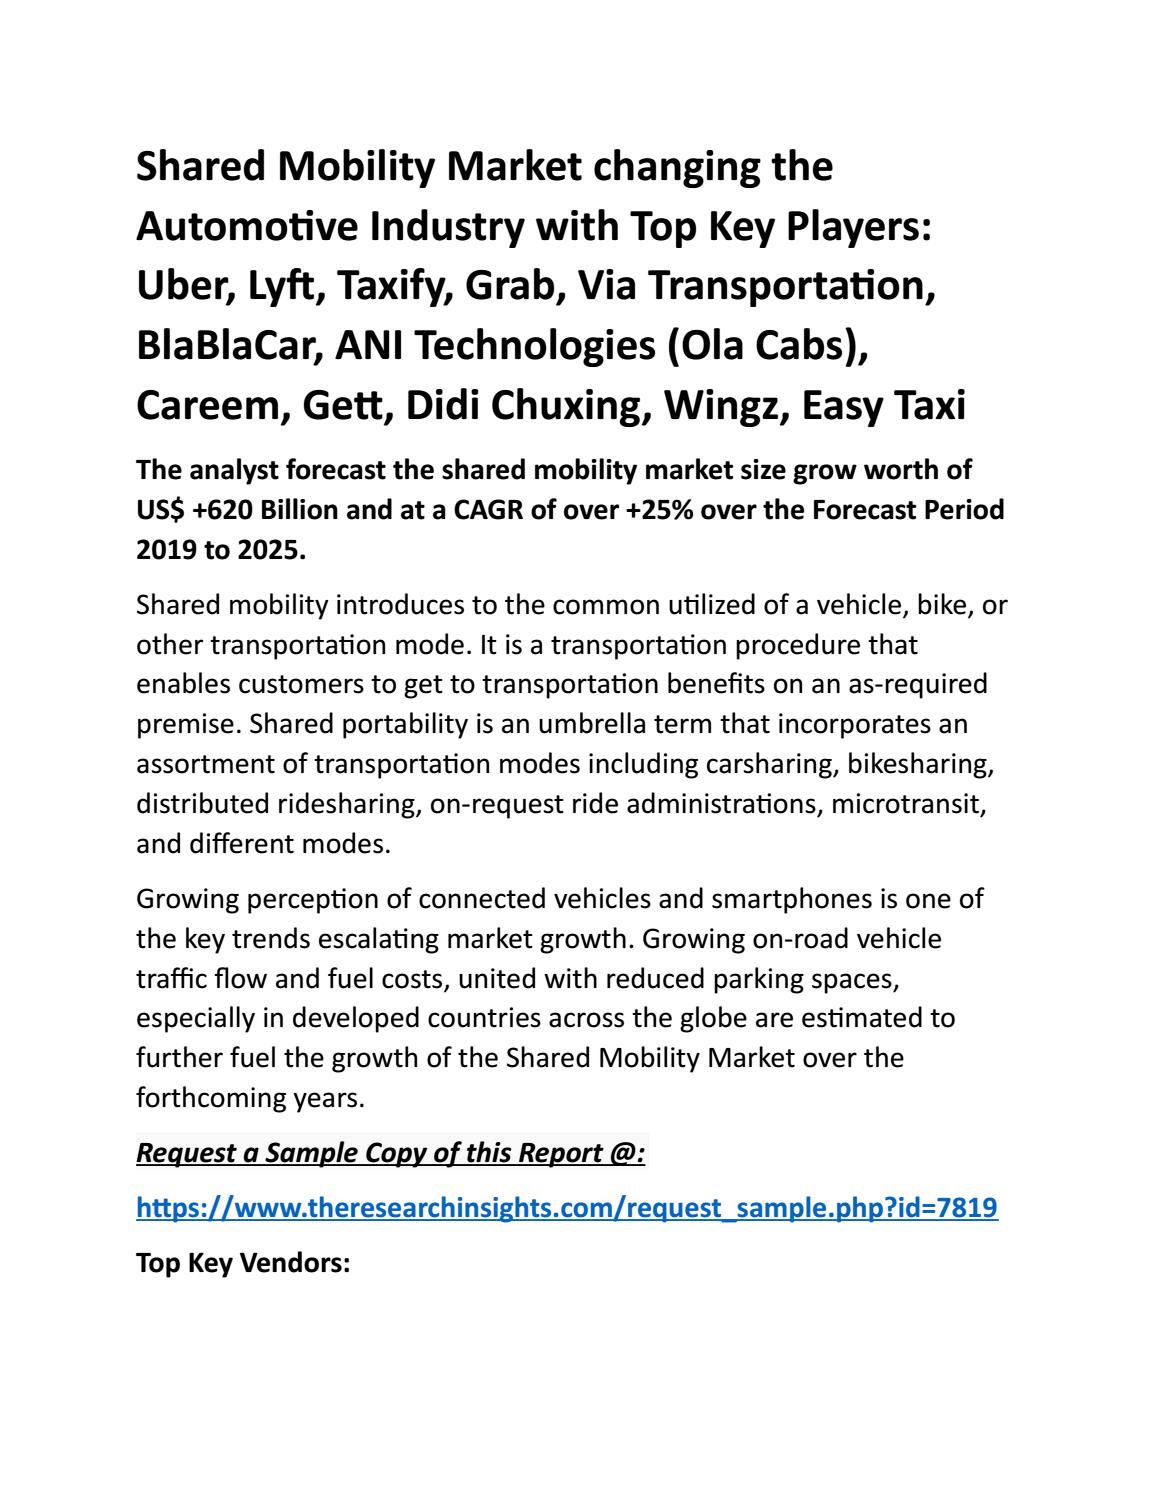 Shared Mobility Market 2019-2025 by researchinsights1 - issuu